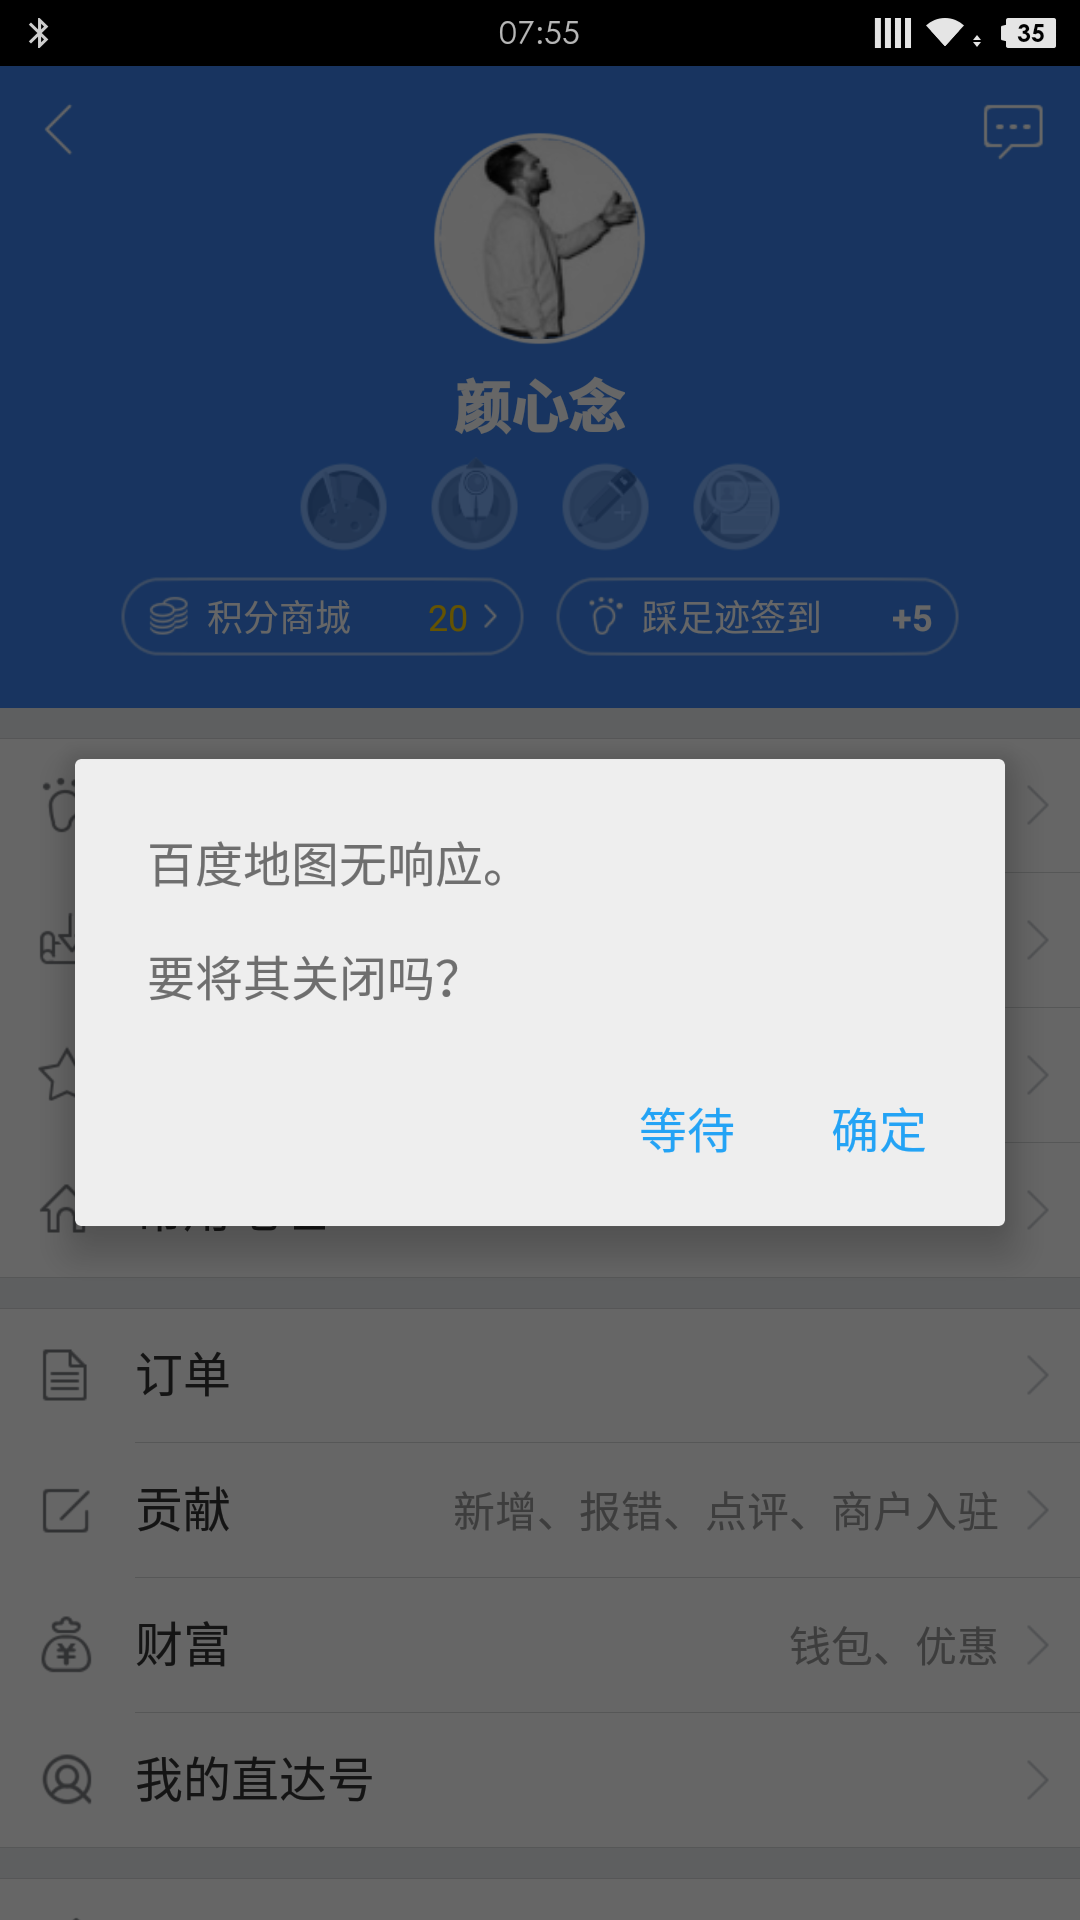 Screenshot_2015-10-13-07-55-44.png